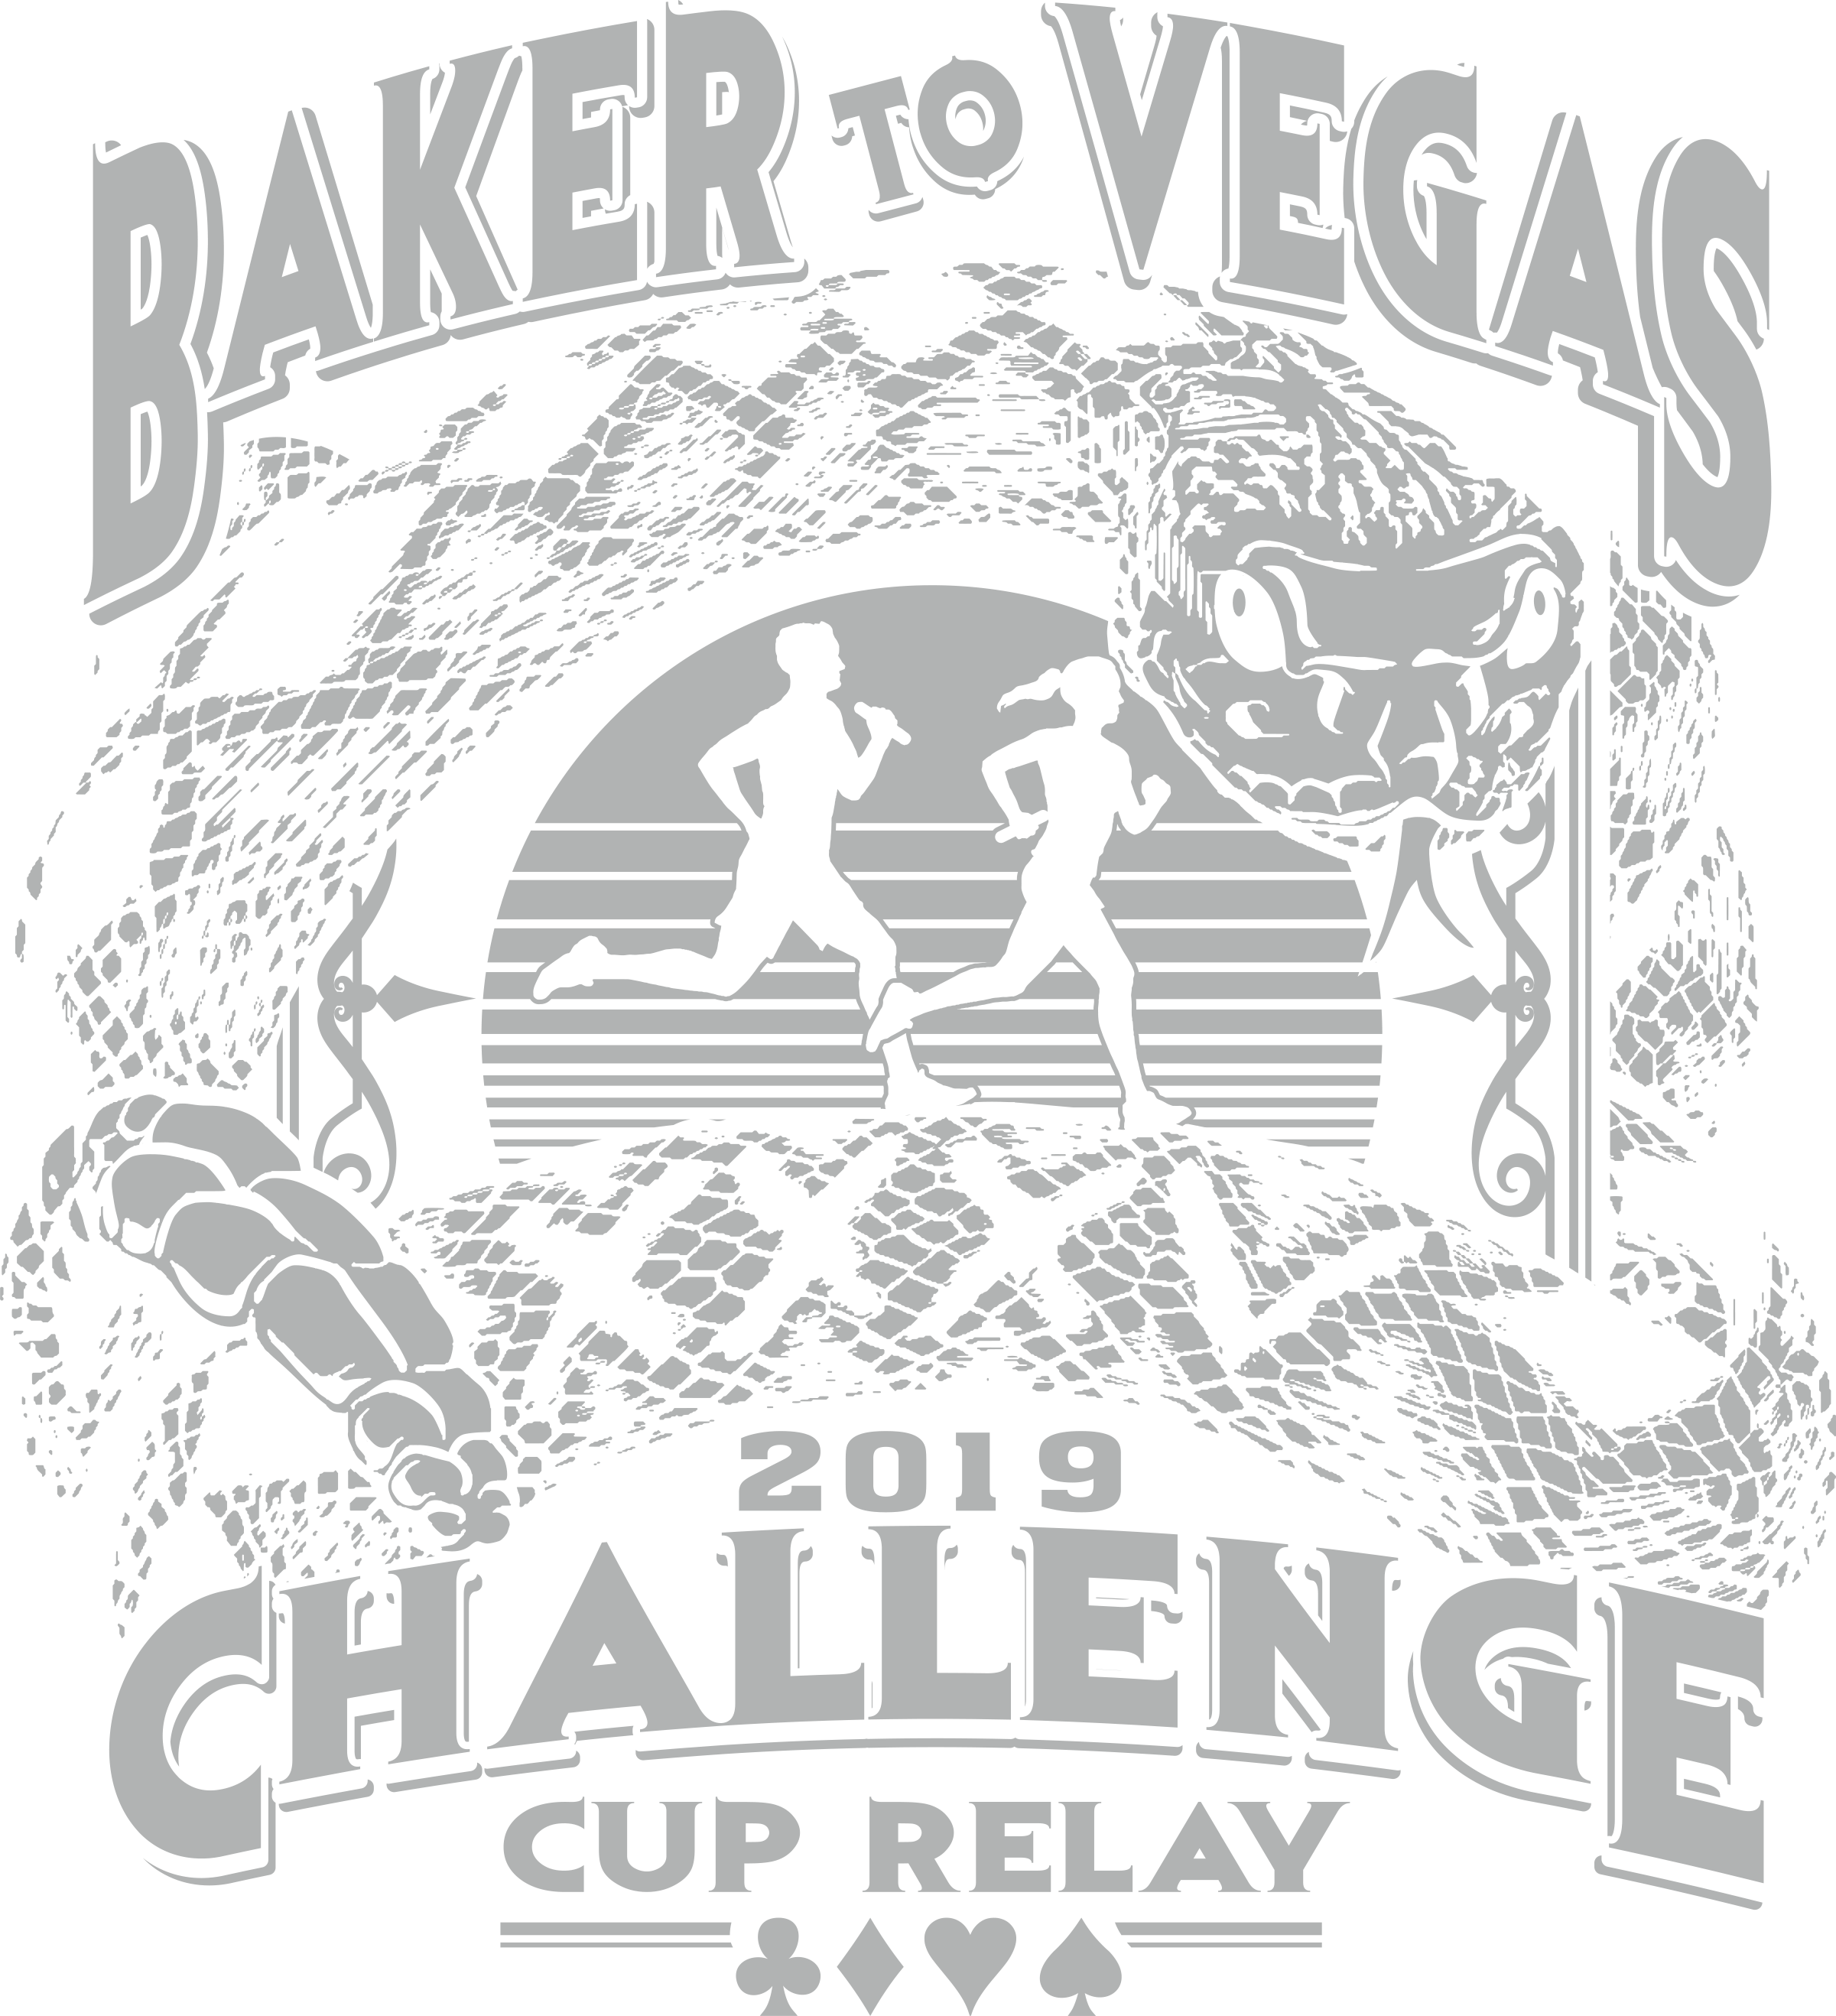 Baker To Vegas Where Runners Go Compete Basic Rules For Relay Race Home